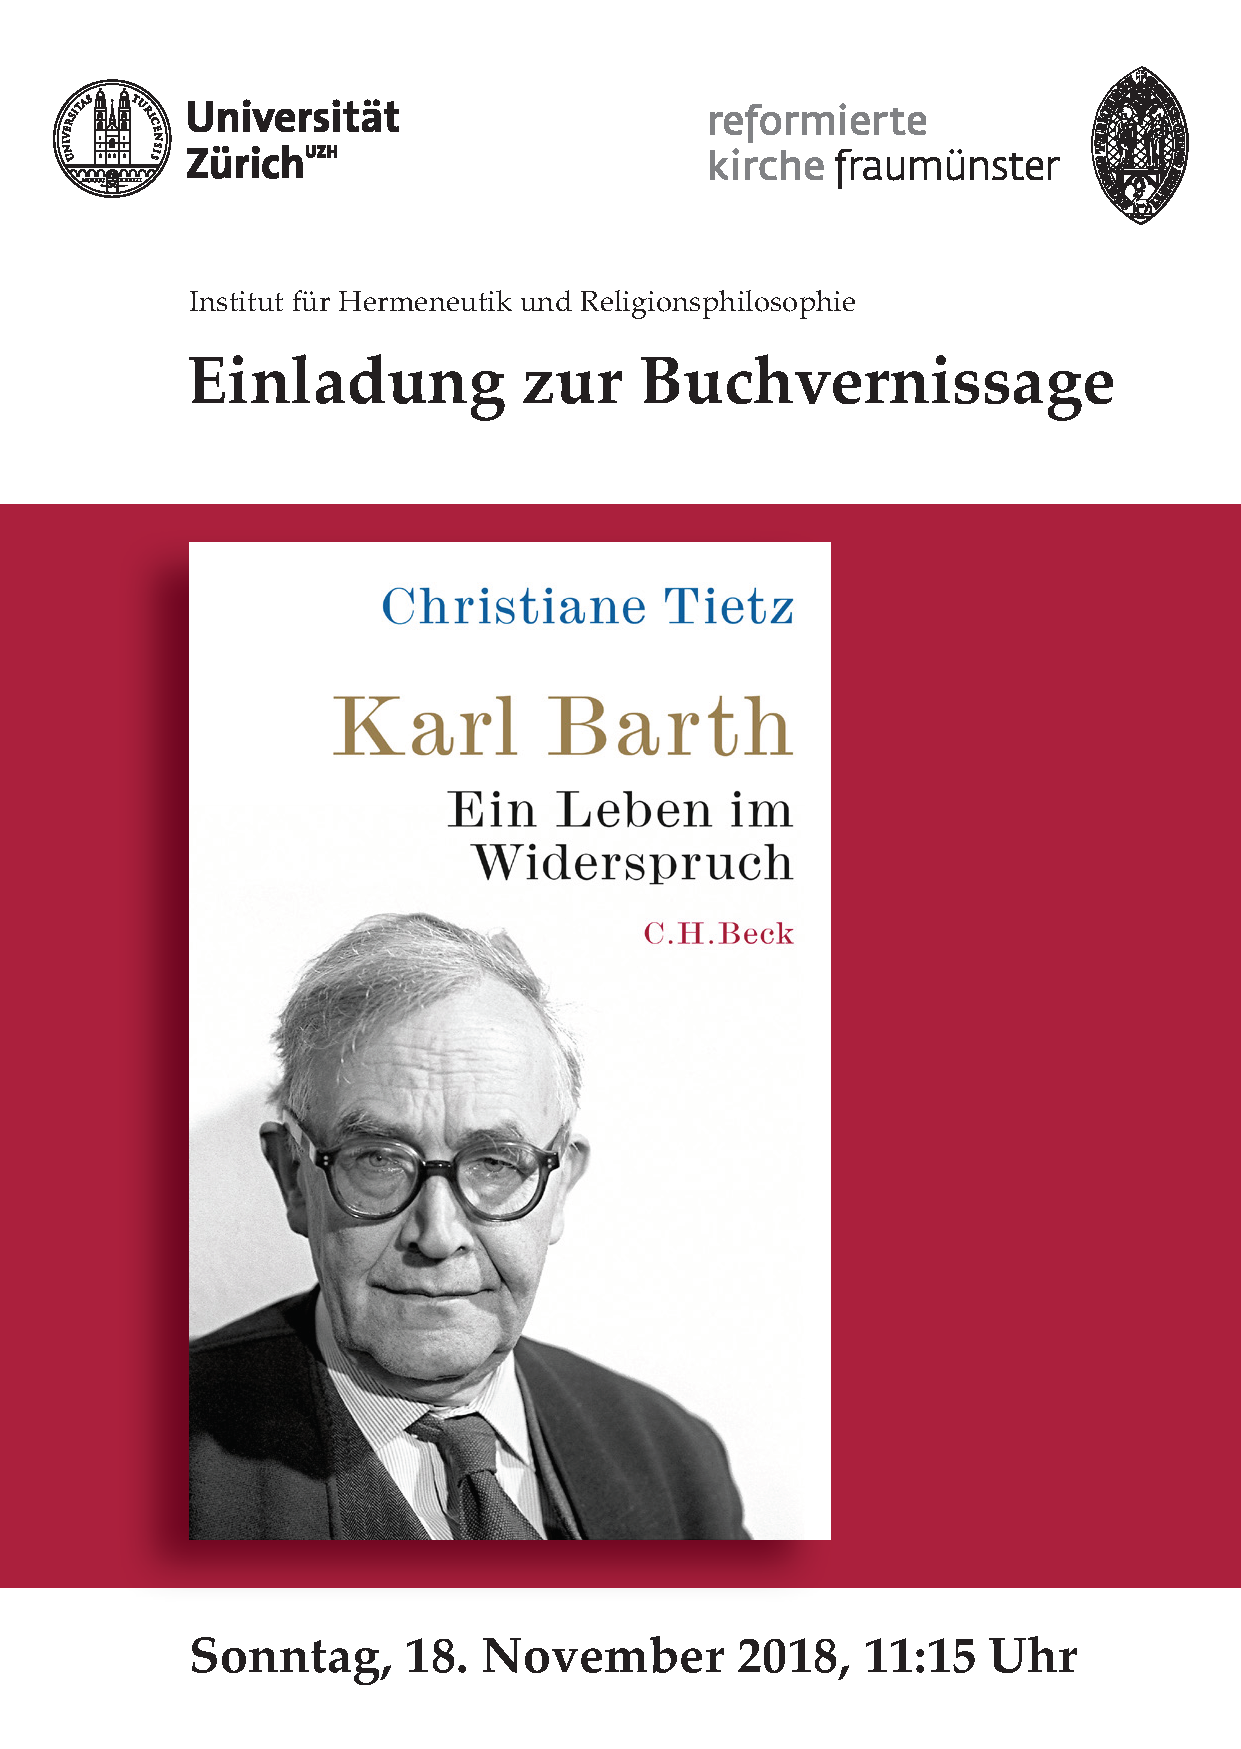 Buchvernissage Karl Barth